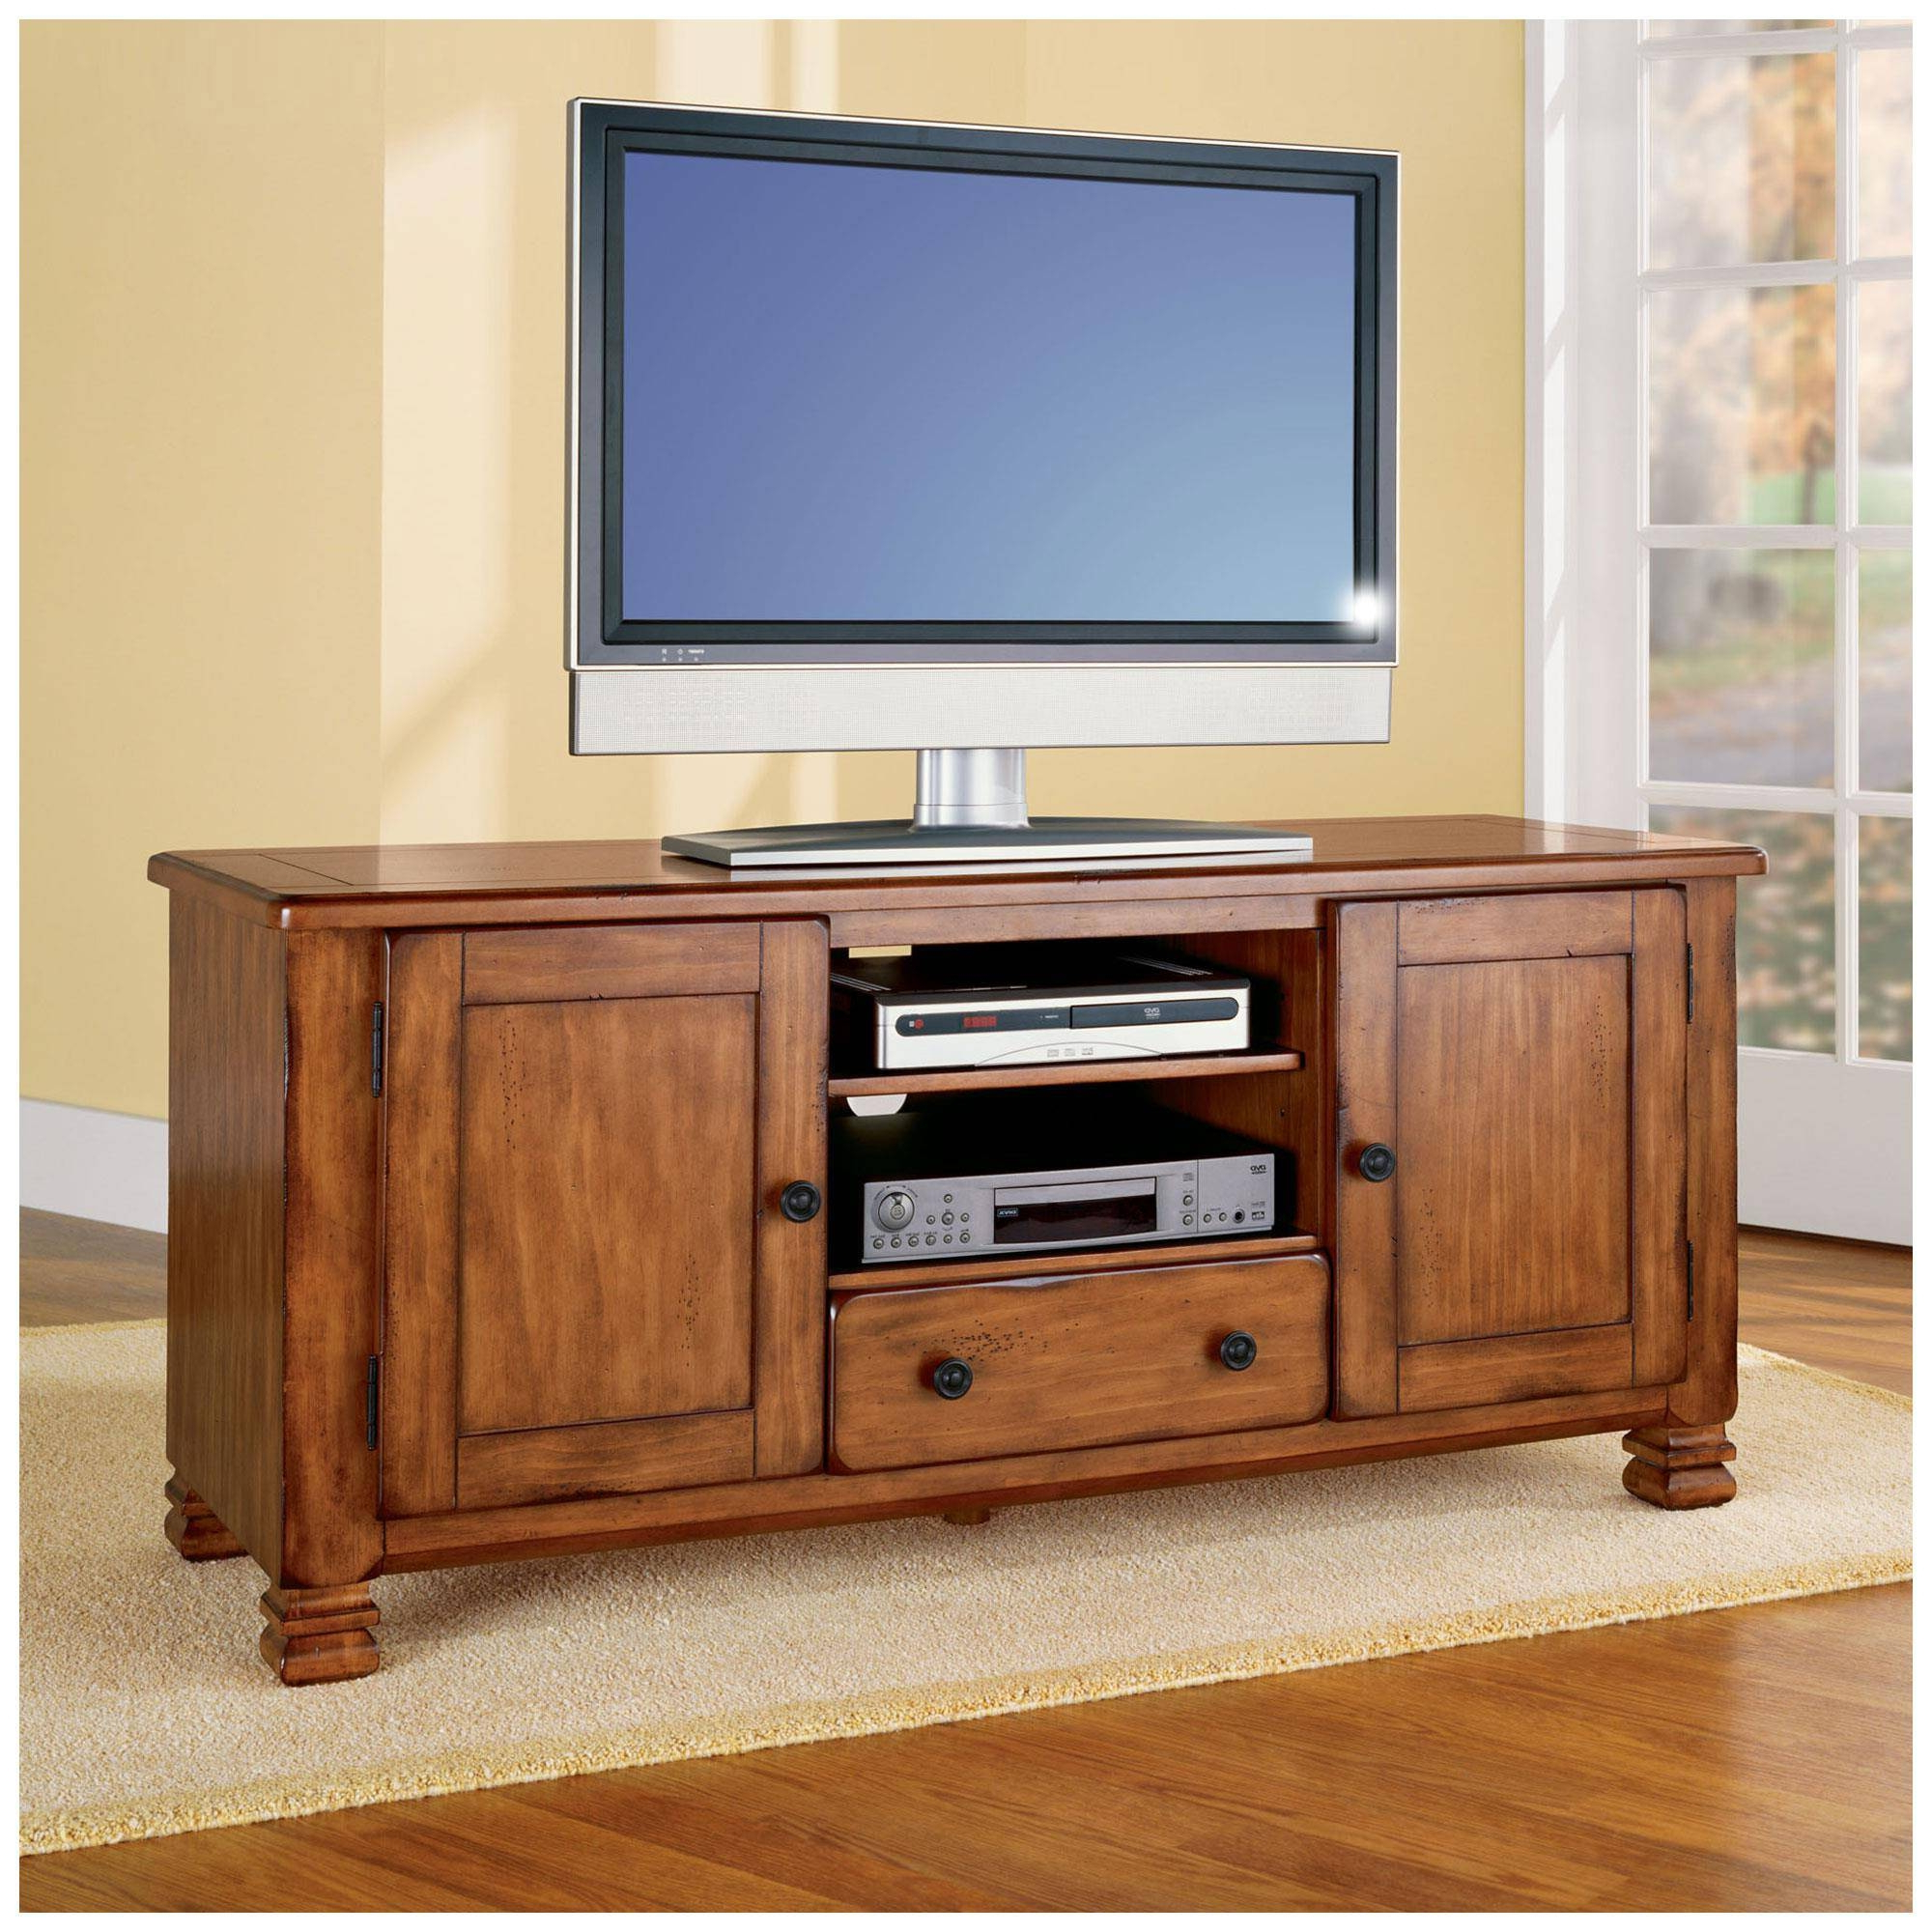 Fashionable Tv Stands For Flat Screens Trendy Innovative Low Tv In Trendy Tv Stands (Gallery 5 of 20)